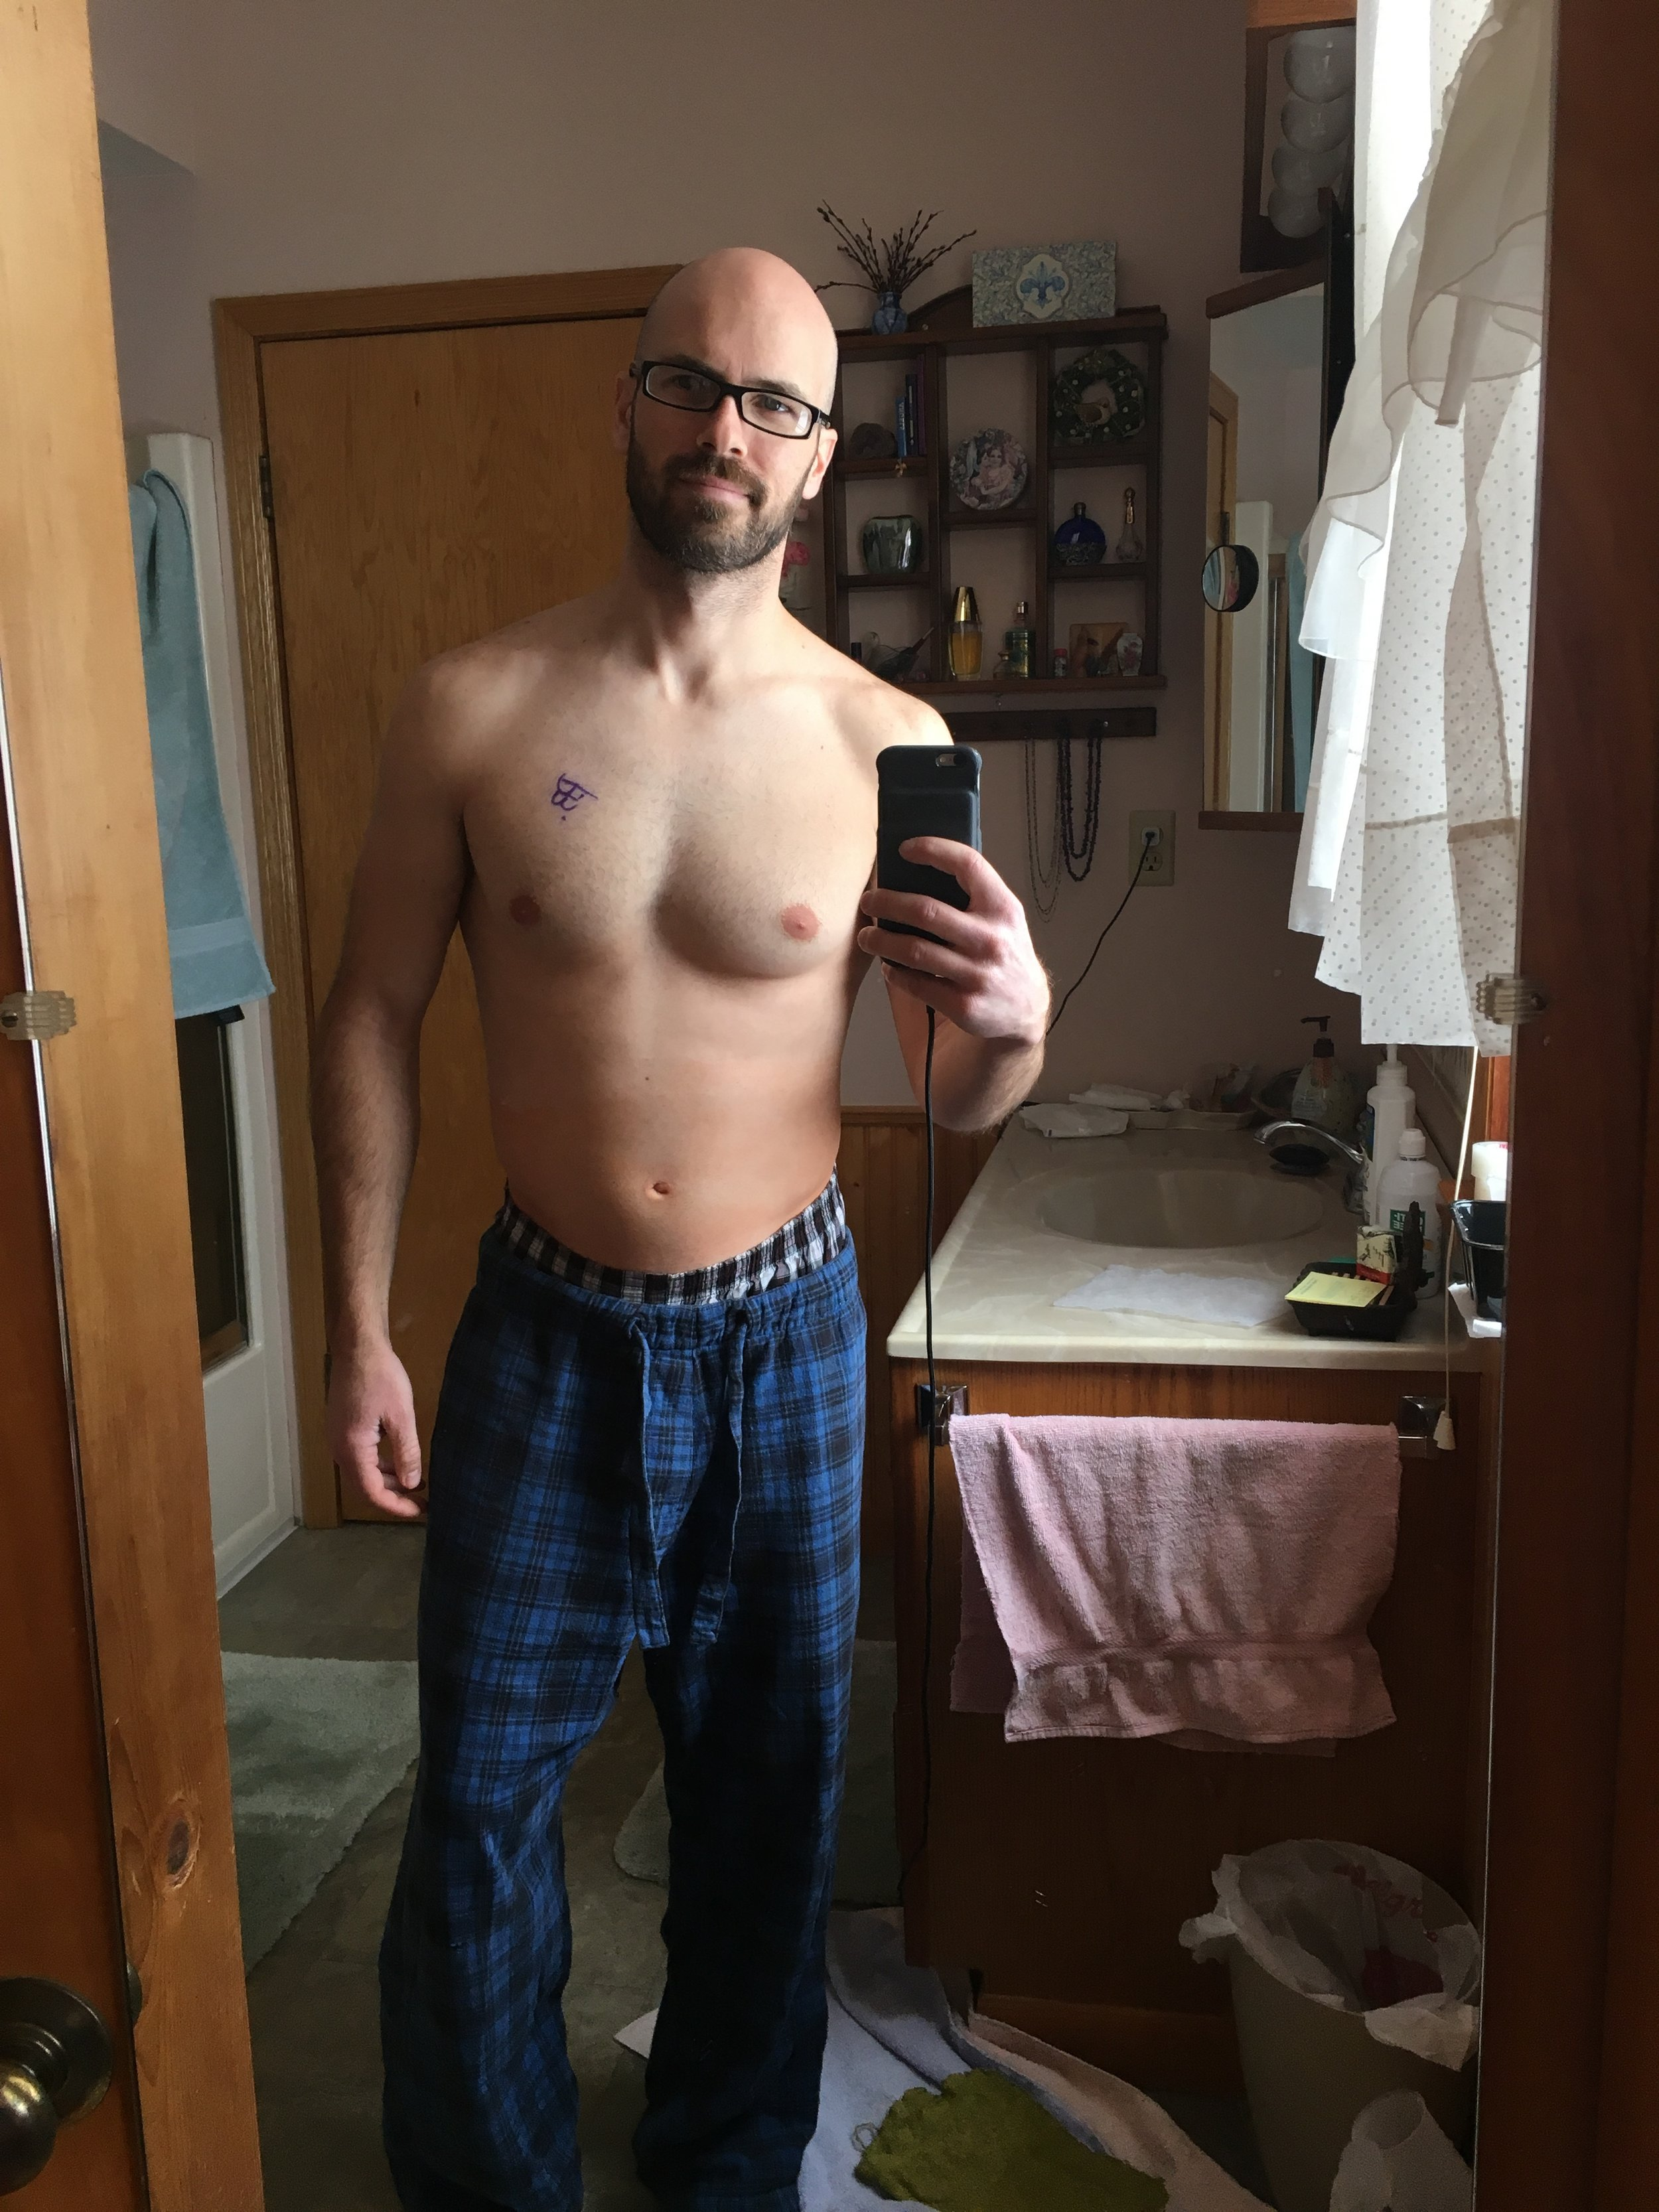 Post-op body still with my doctors autograph. Finally was able to stand on my own two feet!